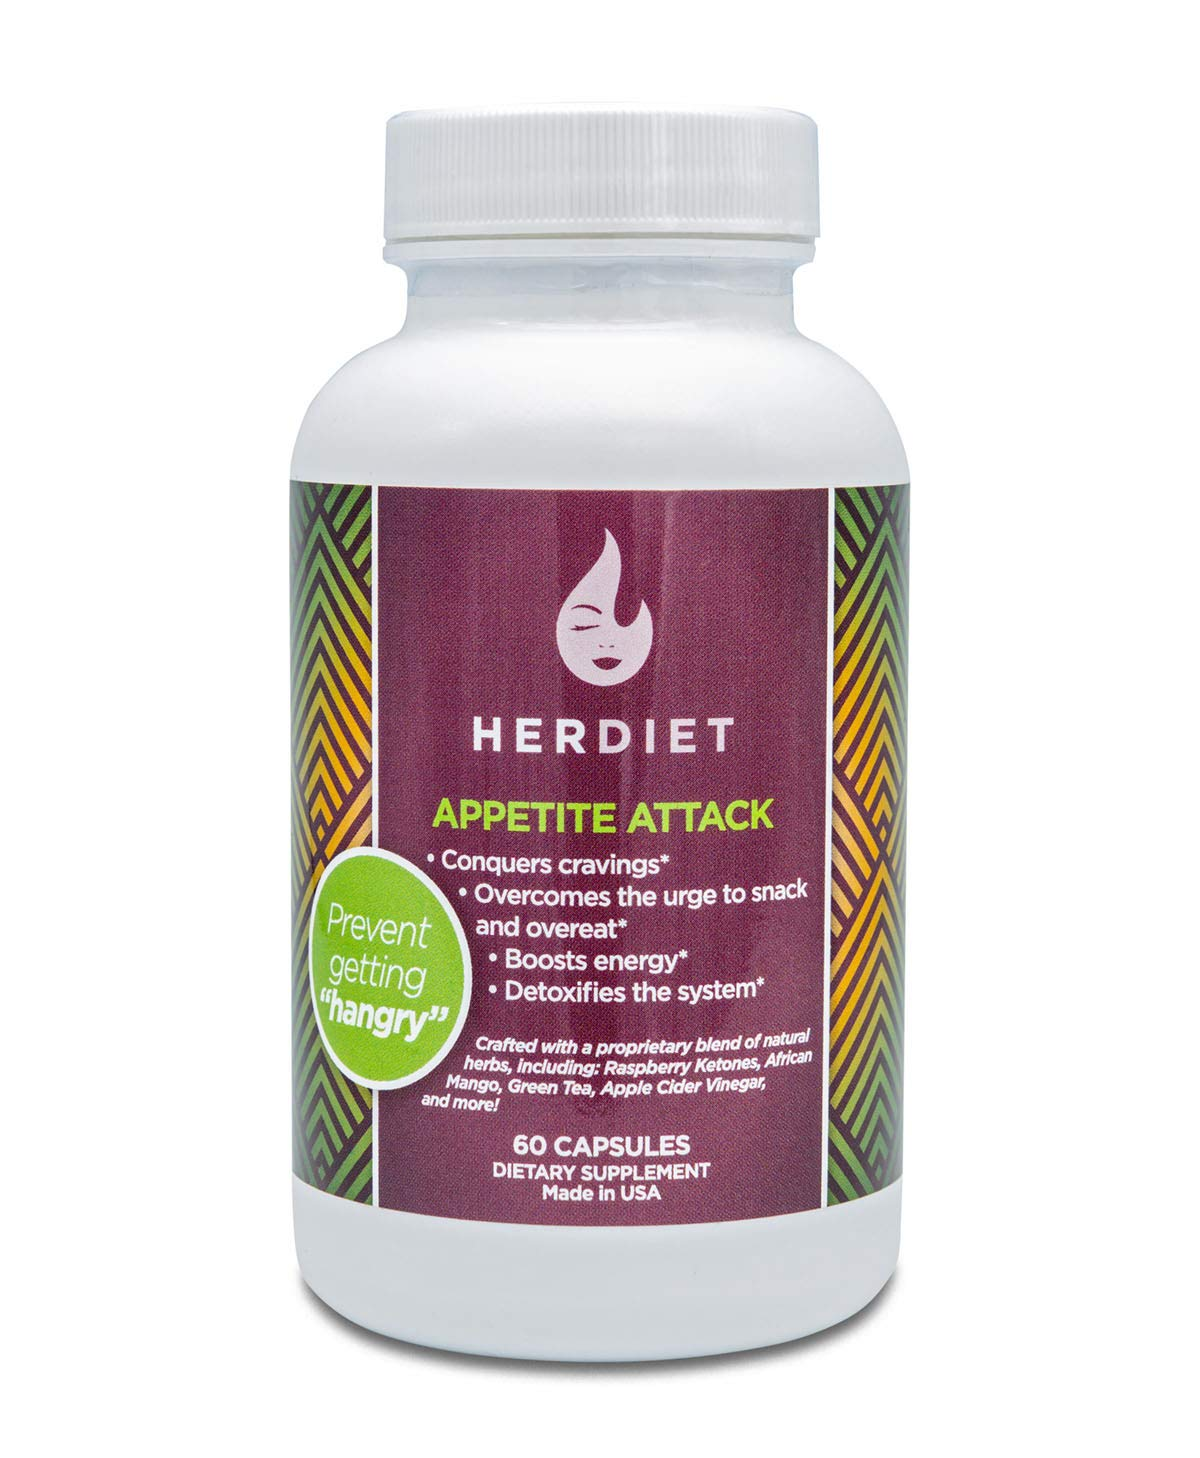 Her Diet Appetite Attack - Weight Loss Pills for Women - Ultra Strength Appetite Suppressant - Thermogenic Weight Loss Supplement - Prevent Overeating - Curb Cravings by HER DIET